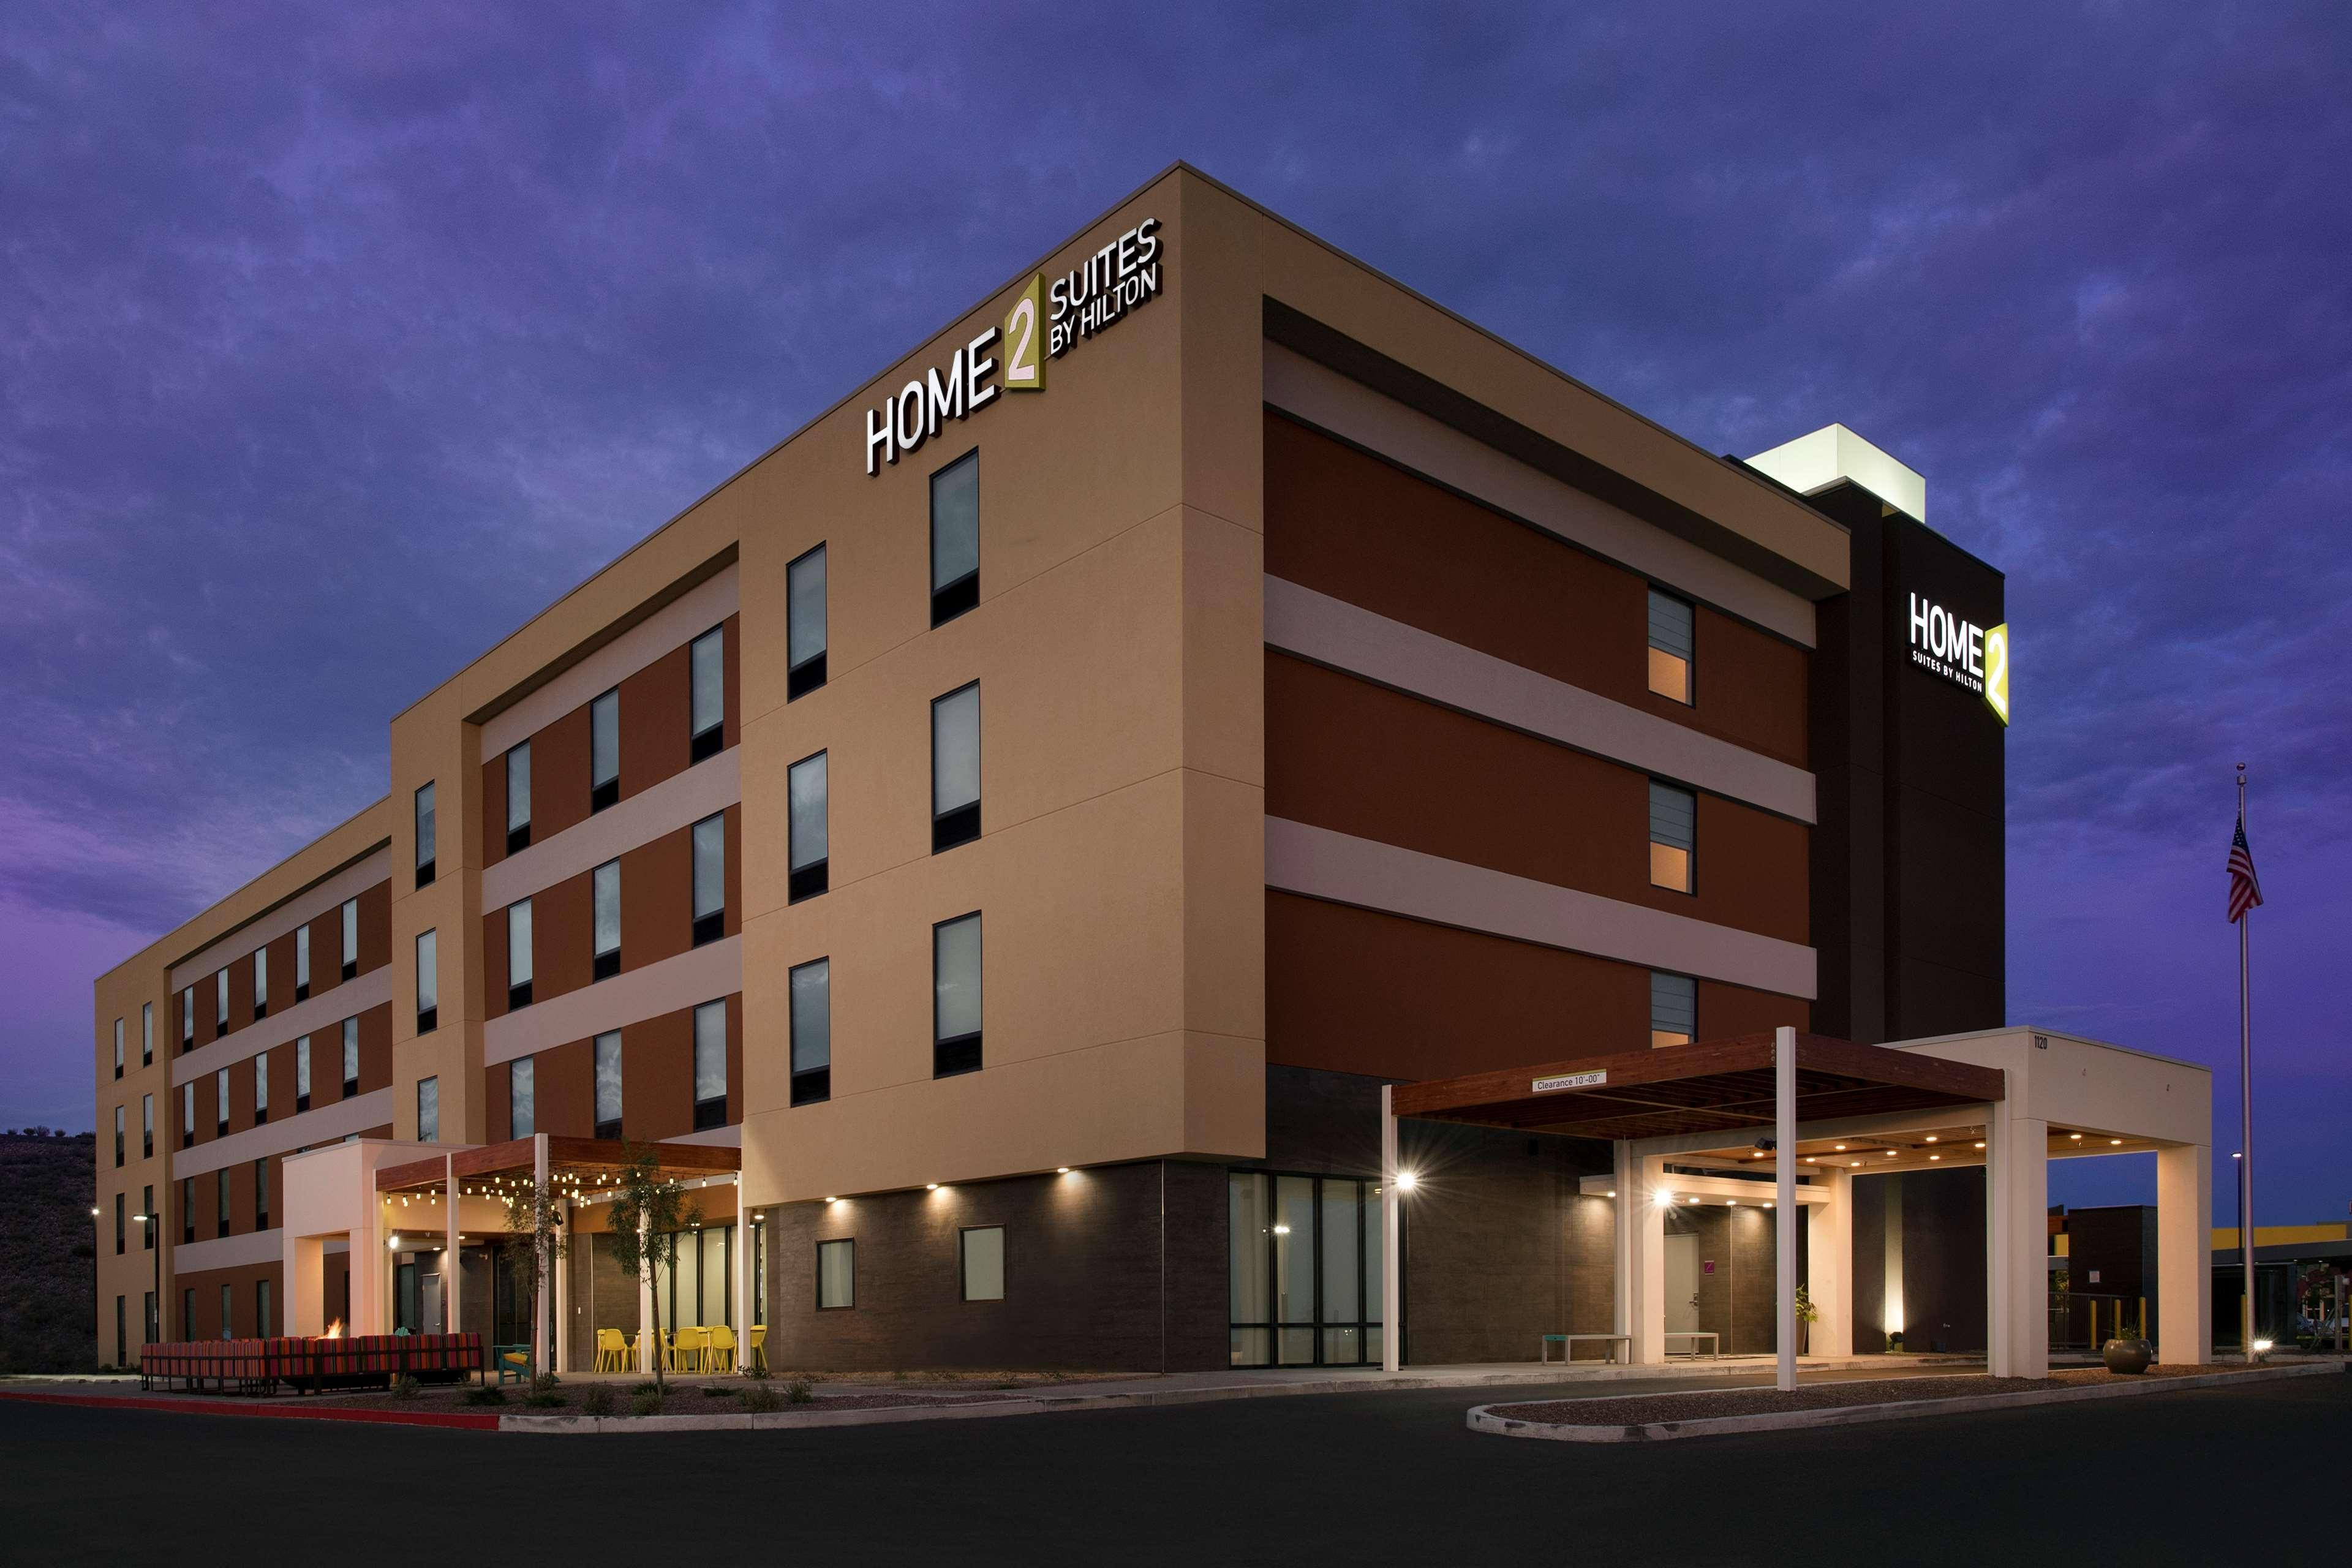 Home2 Suites Las Cruces, NM, Dona Ana